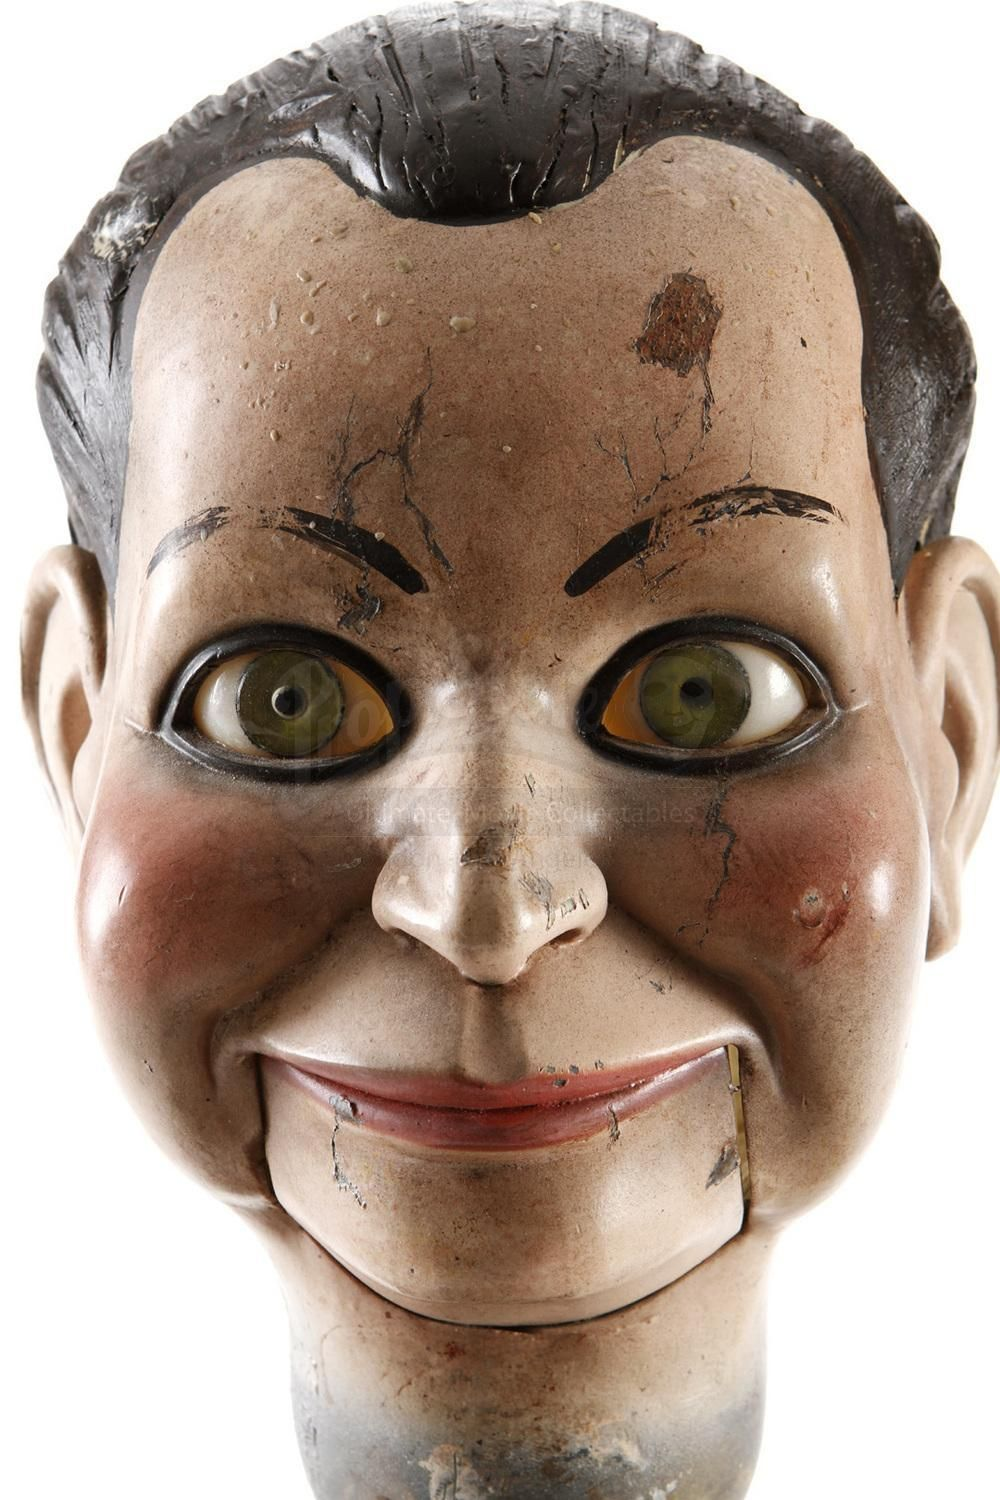 Ventriloquist doll headi can see the evilness in his creepy